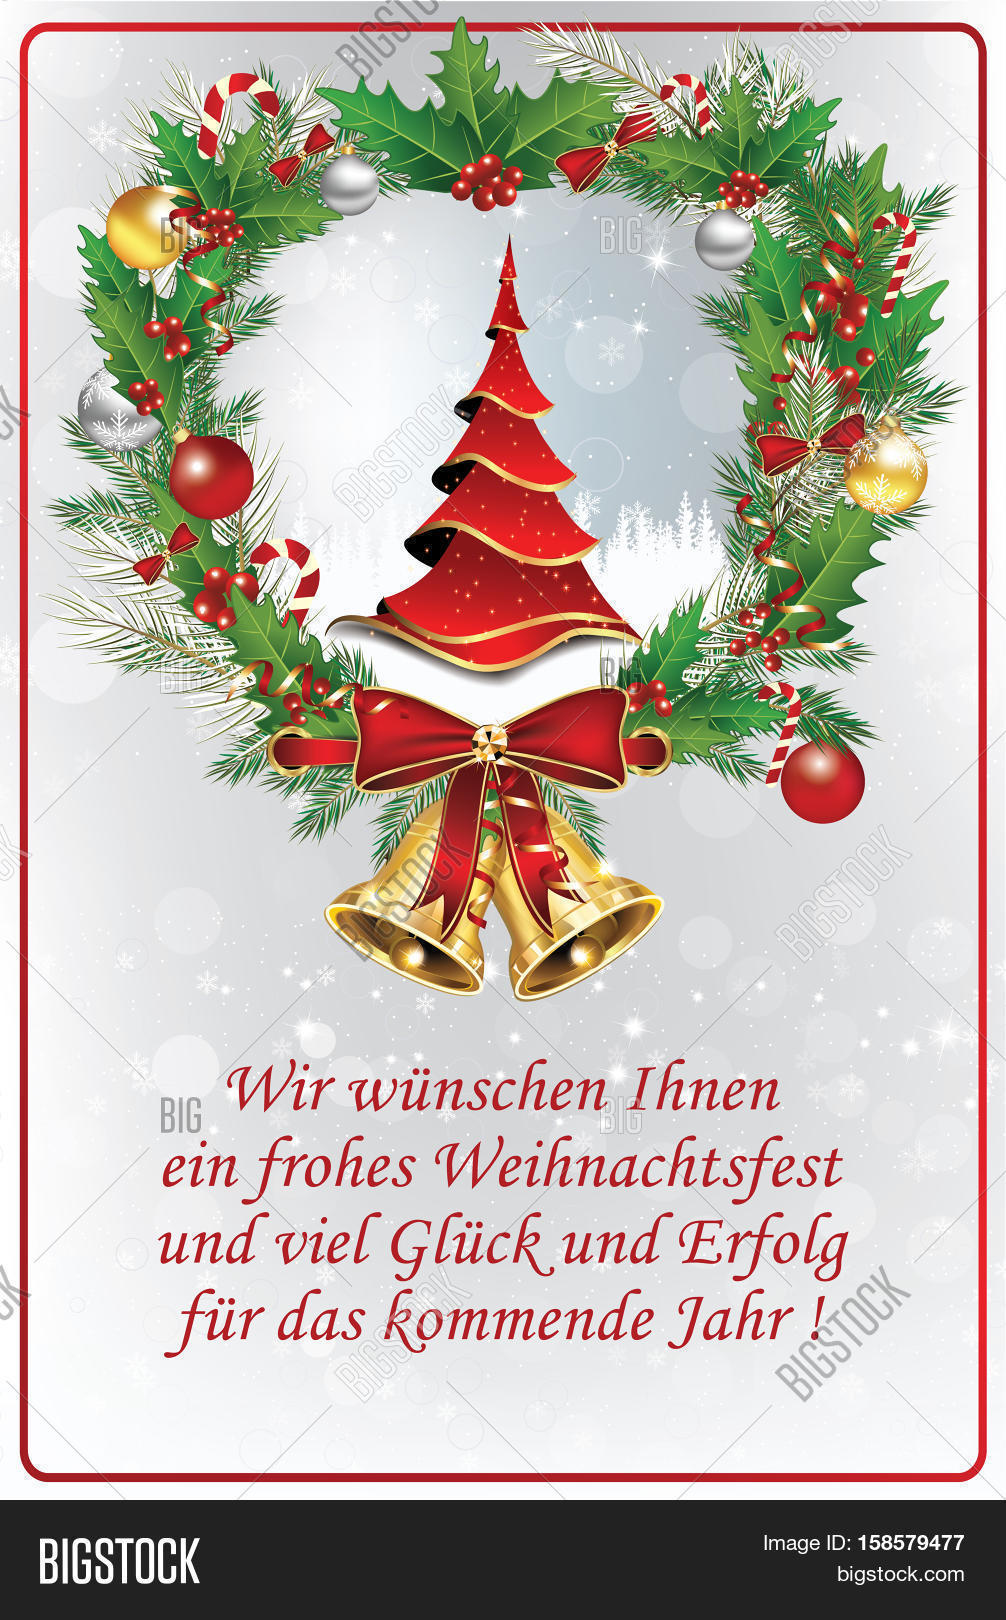 business german greeting card for winter season german text translation we wish you merry